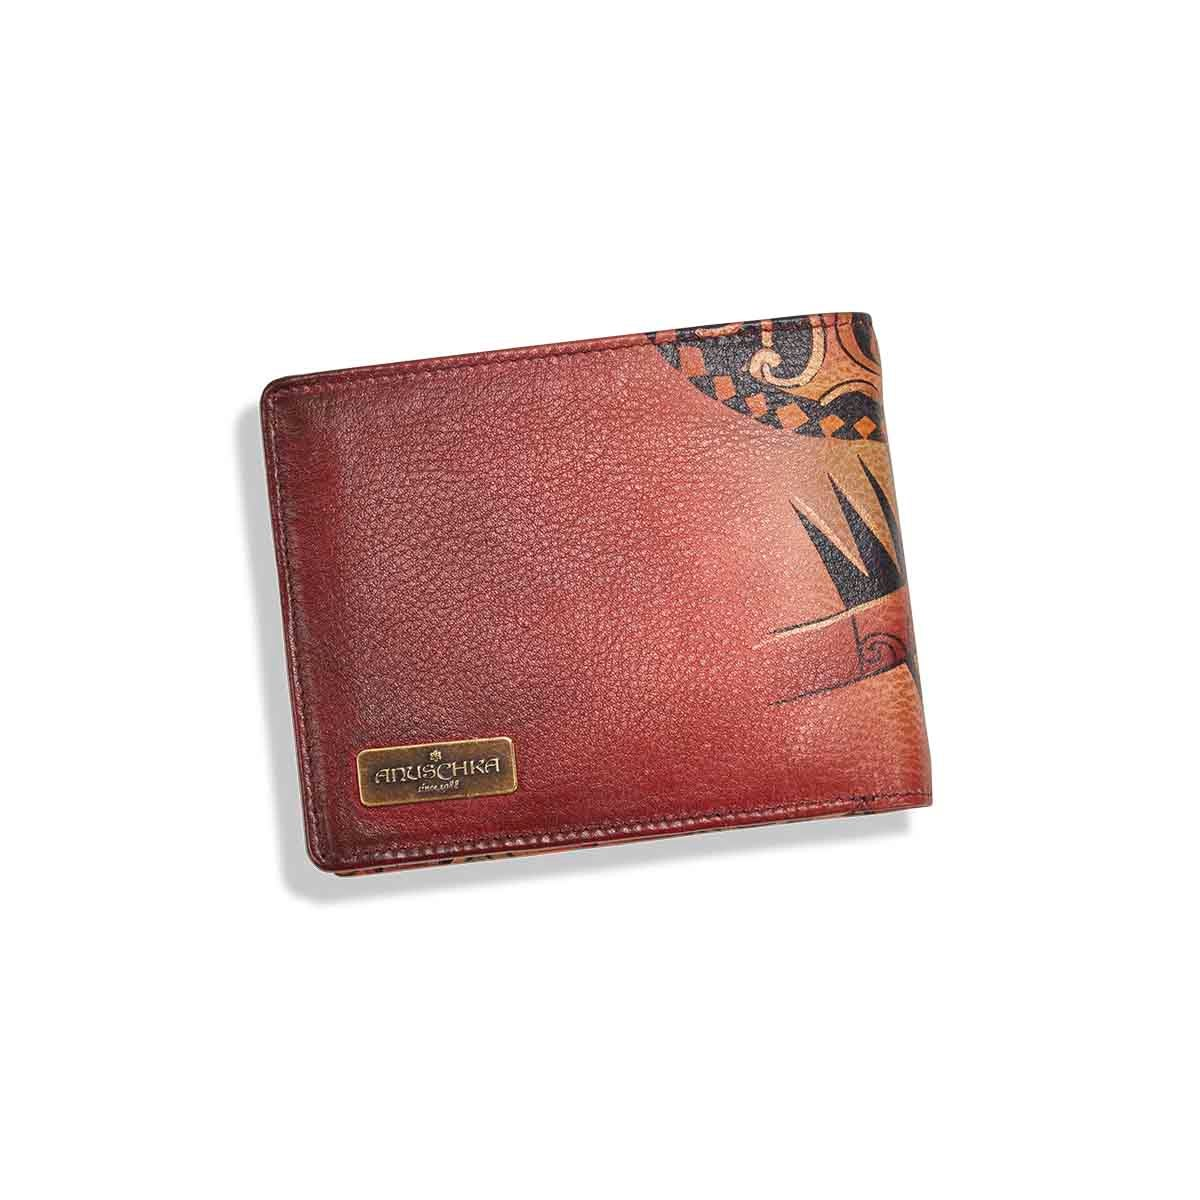 Mns painted lthr Tribal Tattoo wallet